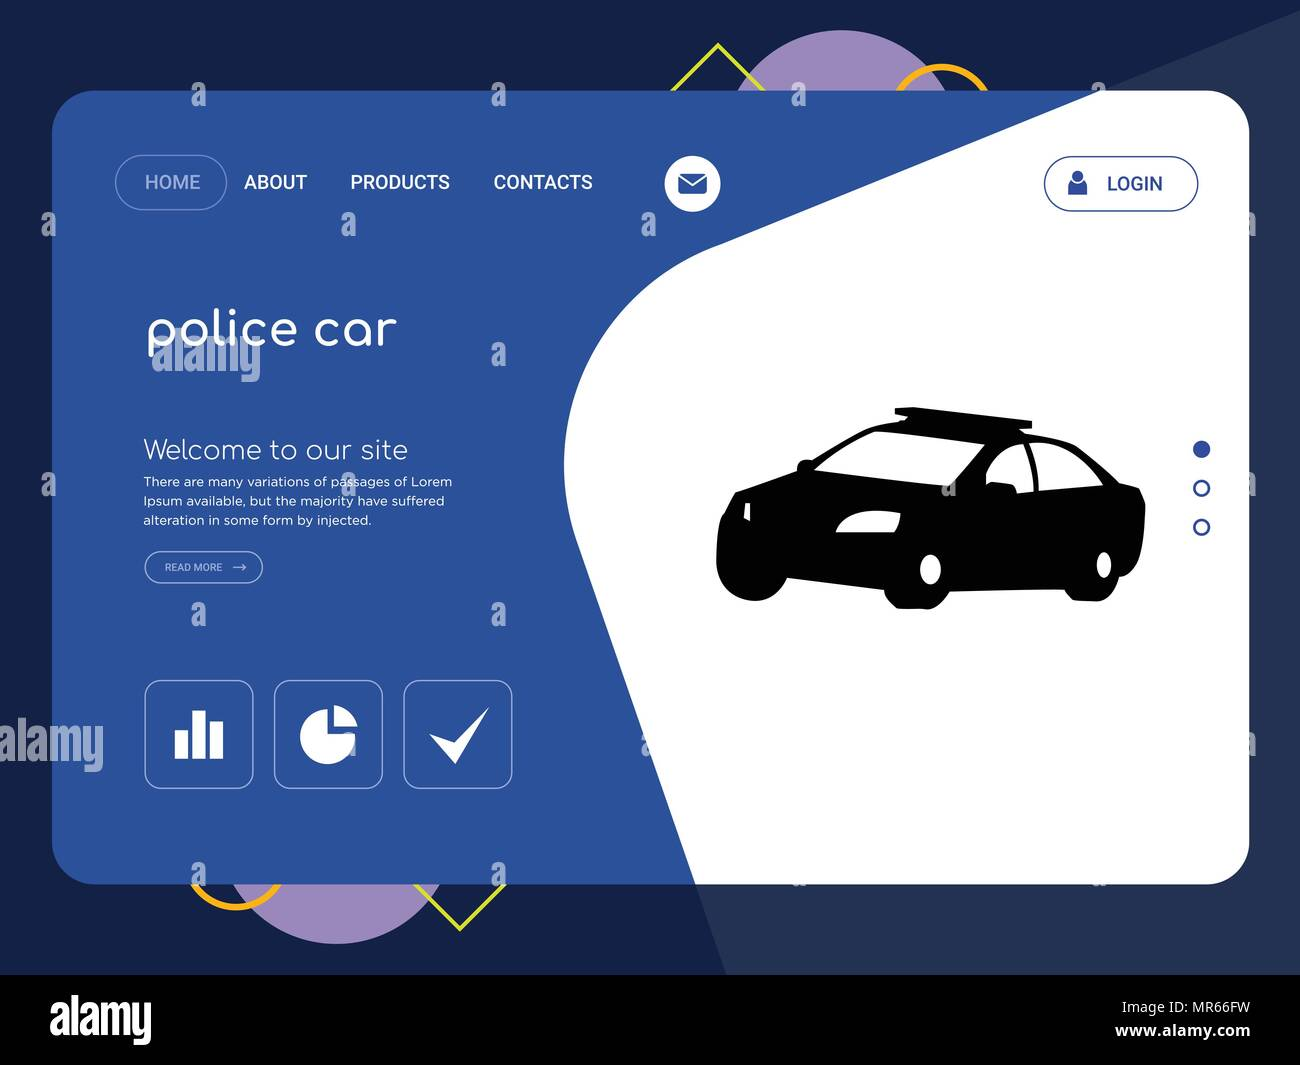 Police Car Website >> Quality One Page Police Car Website Template Vector Eps